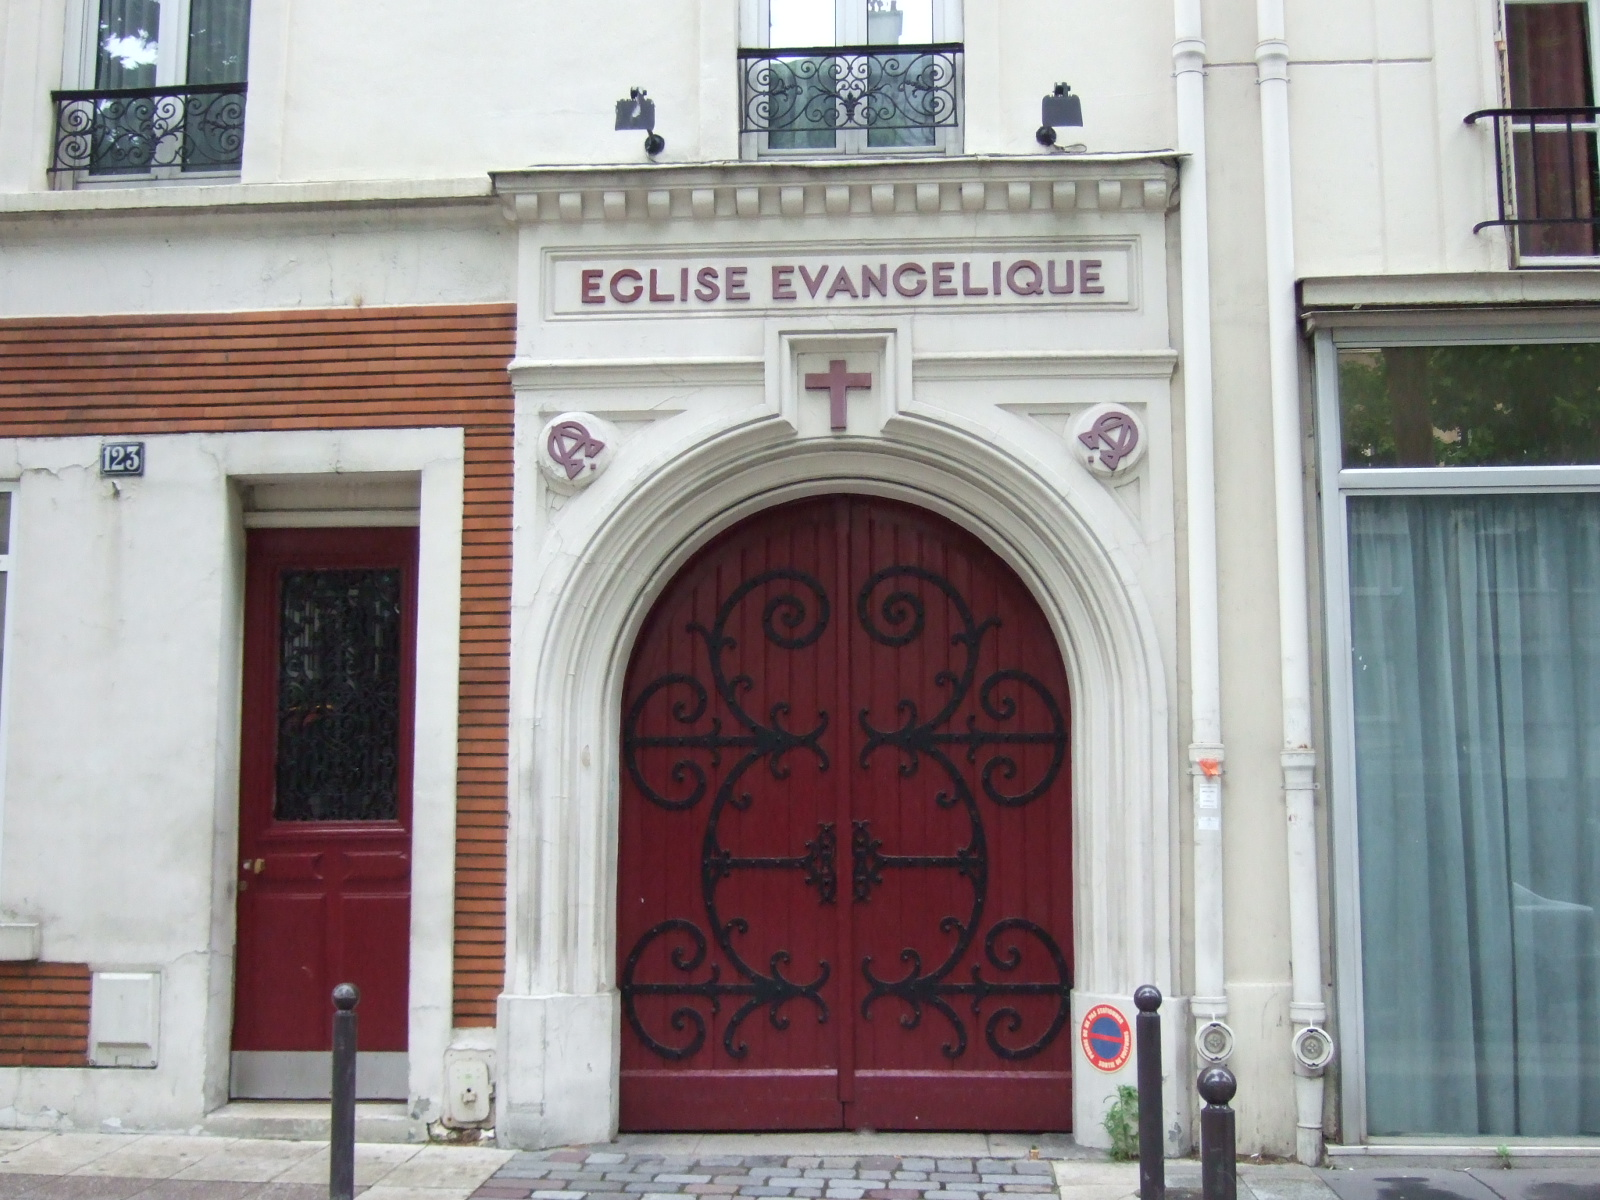 What's church like now? Visiting a church in Paris